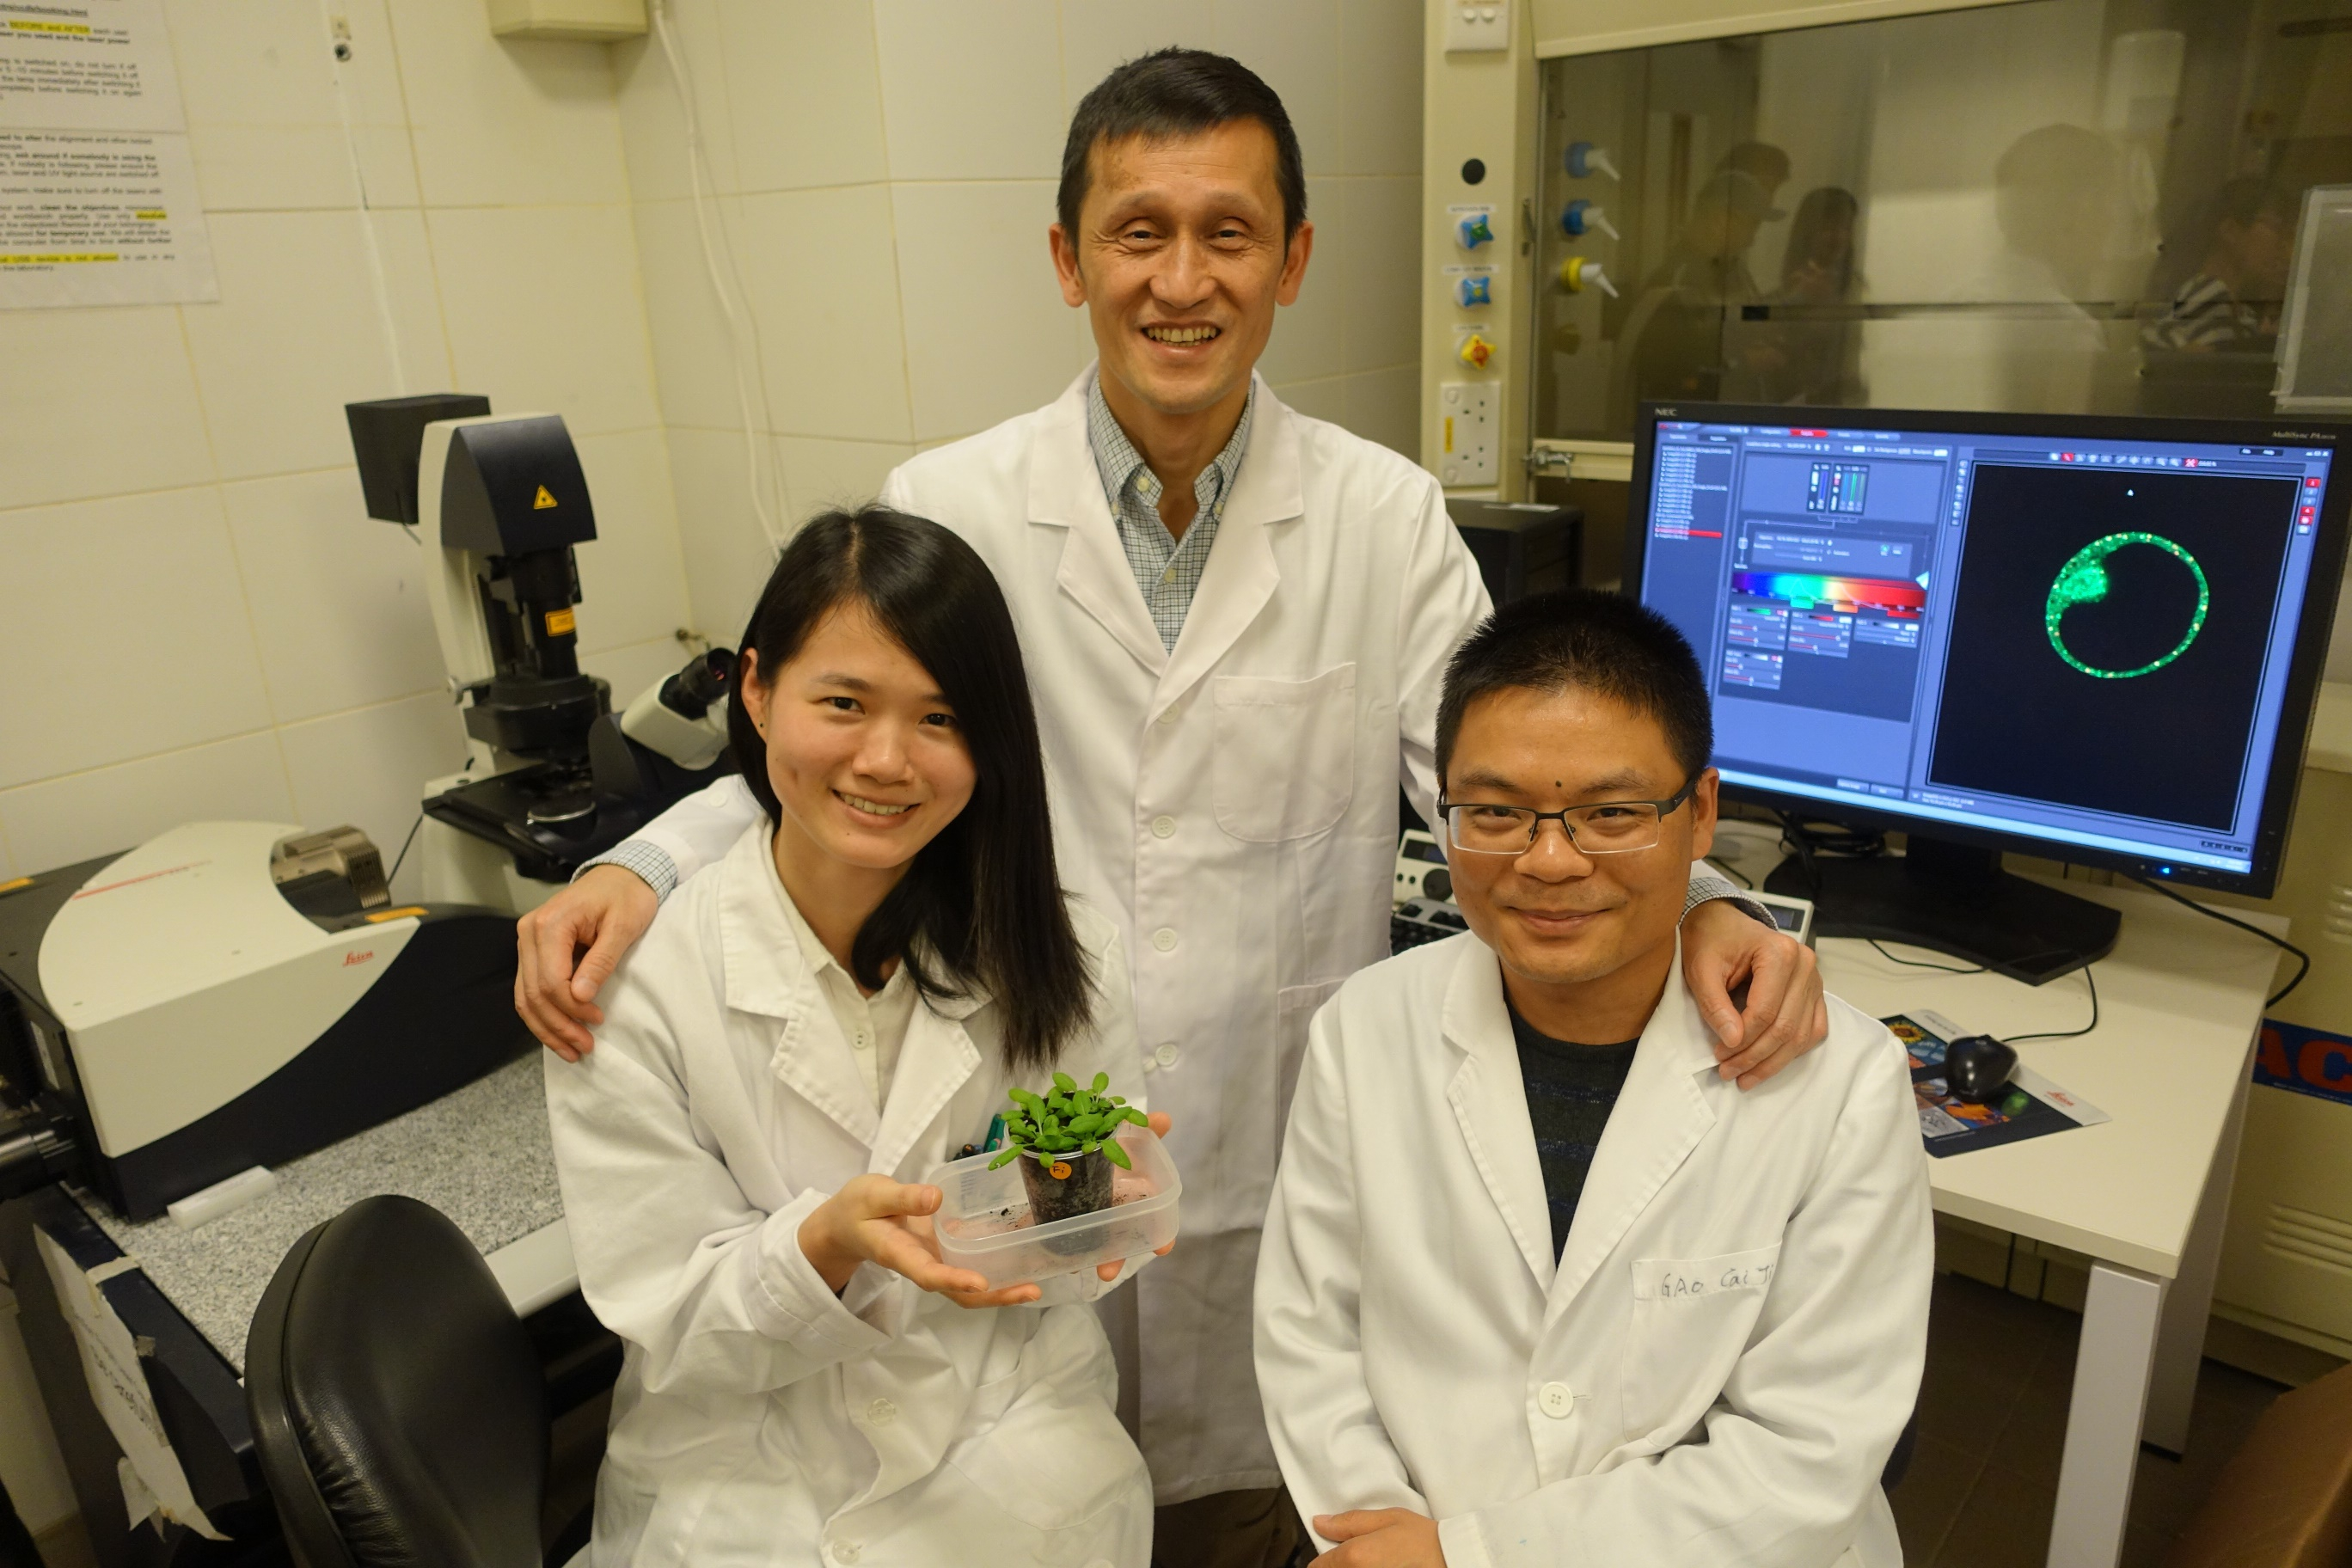 Professor Jiang's research team has been working on the underlying mechanisms of protein transport, organelle biogenesis and function in plants.